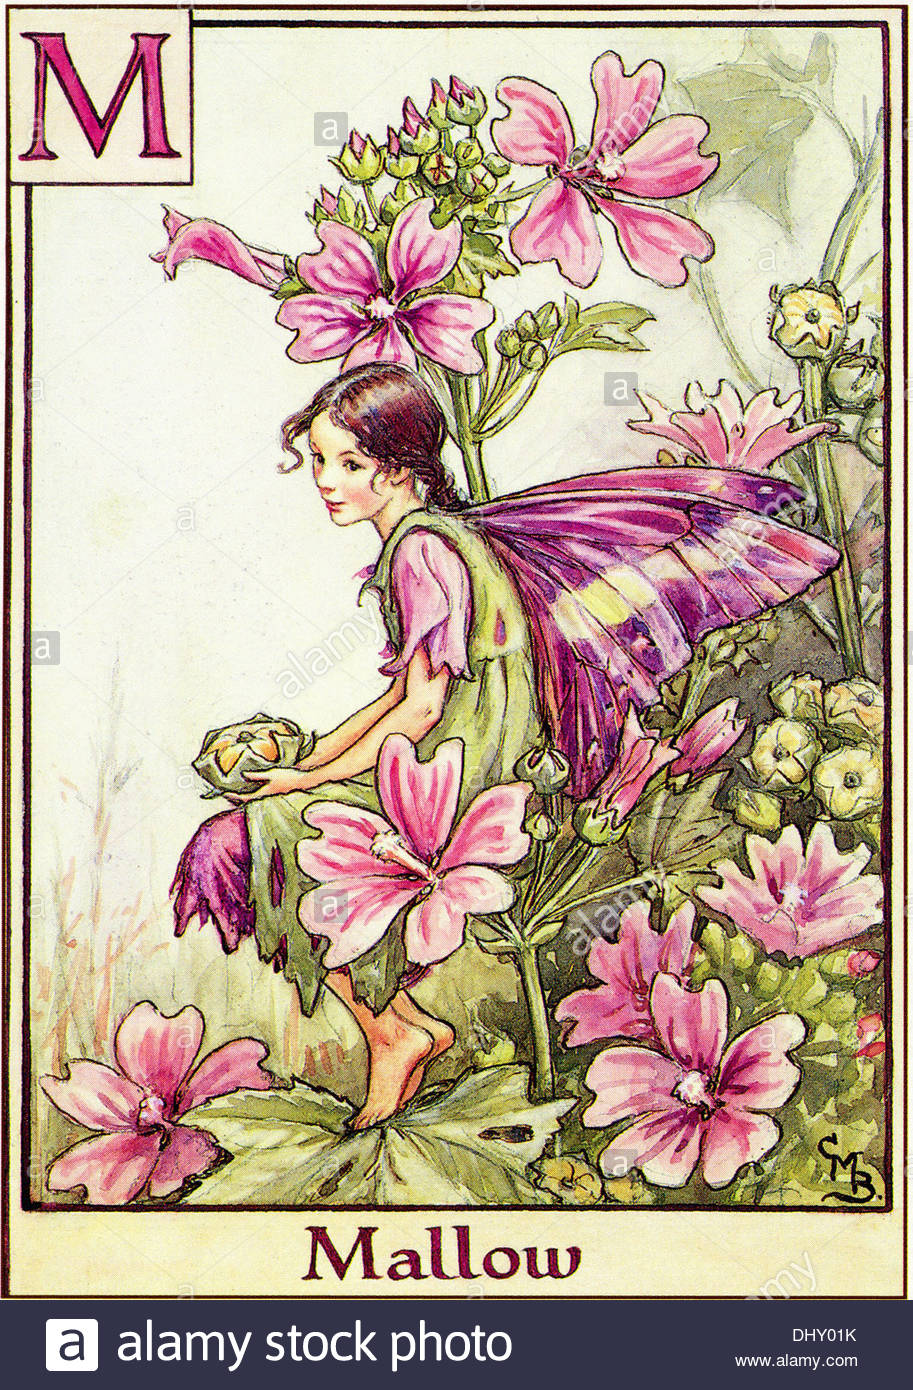 Flower Fairies Illustration by Cicely Mary Barker - The Mallow Fairy, 1934 - Stock Image